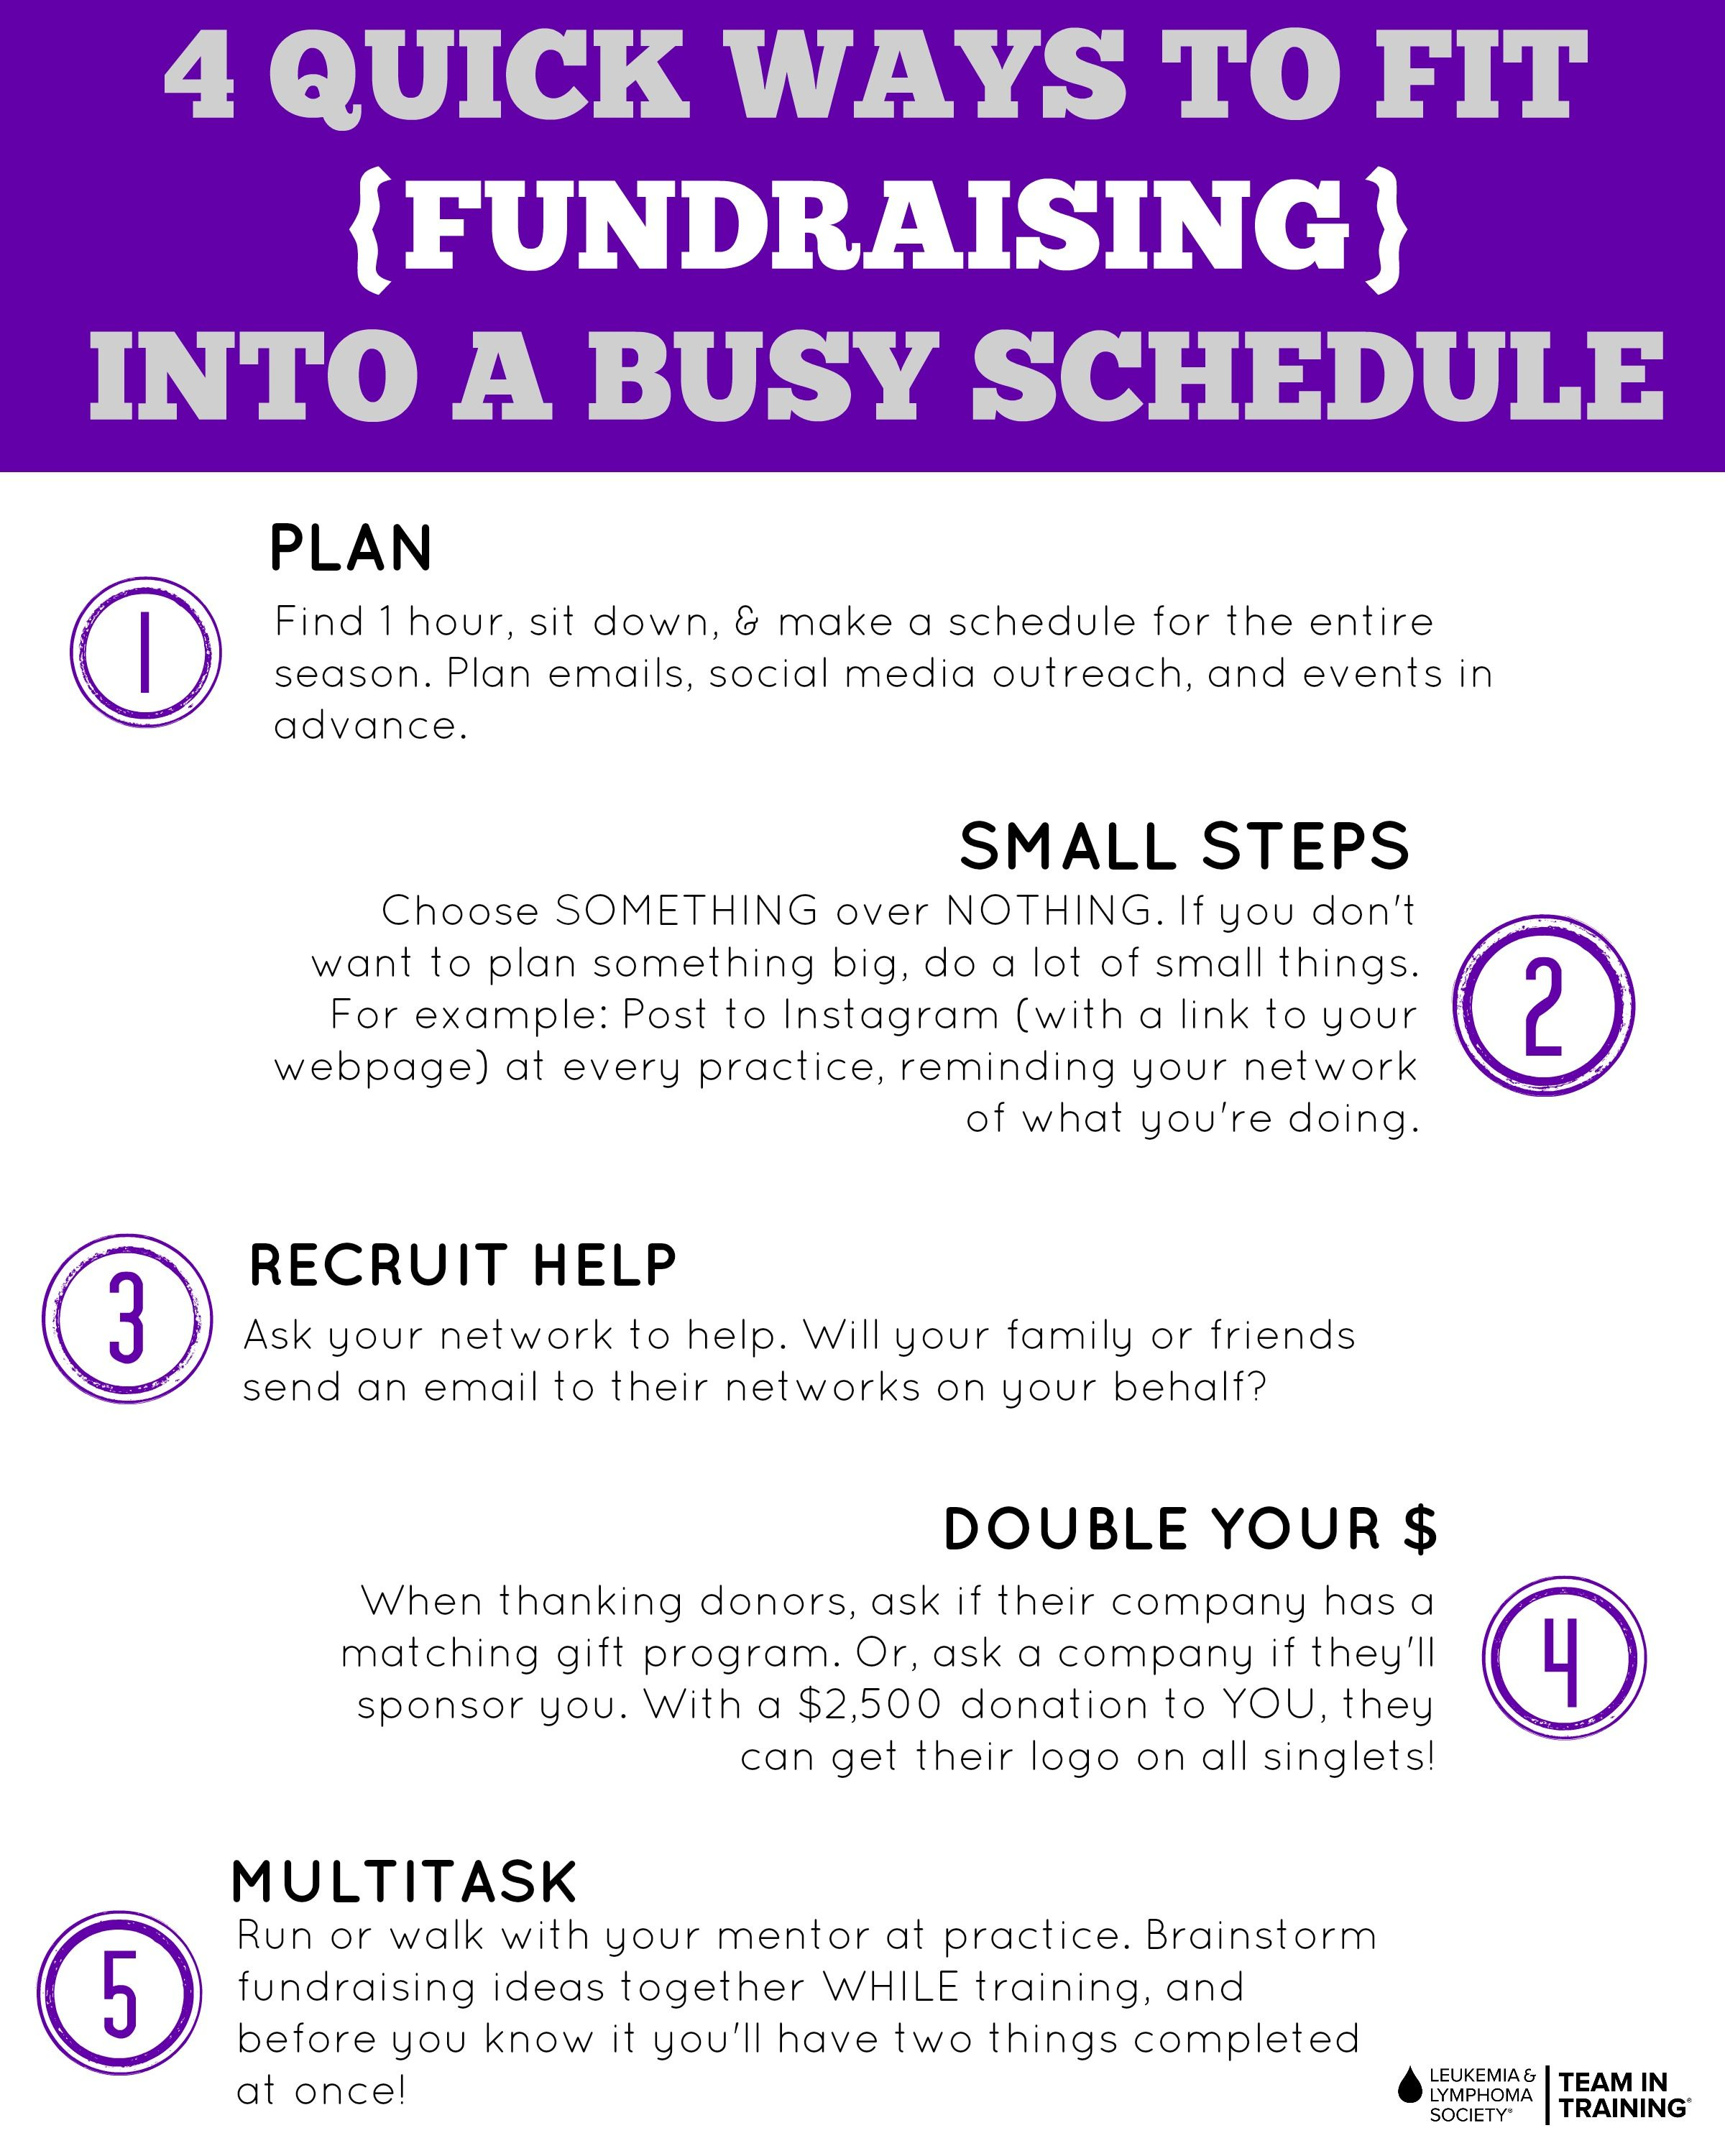 quick fundraising tips - fitting fundraising into a busy schedule